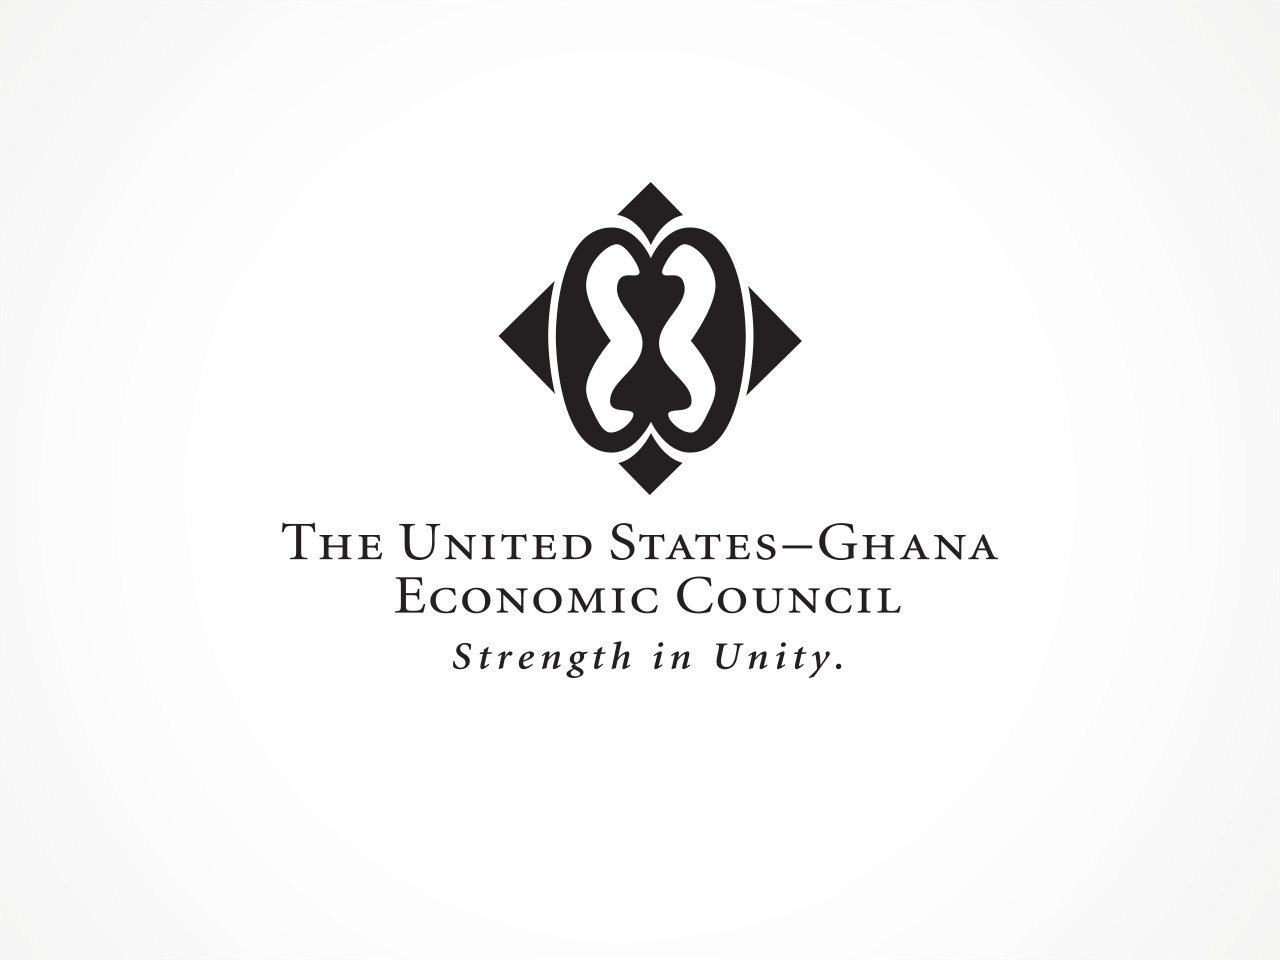 The United States-Ghana Economic Council